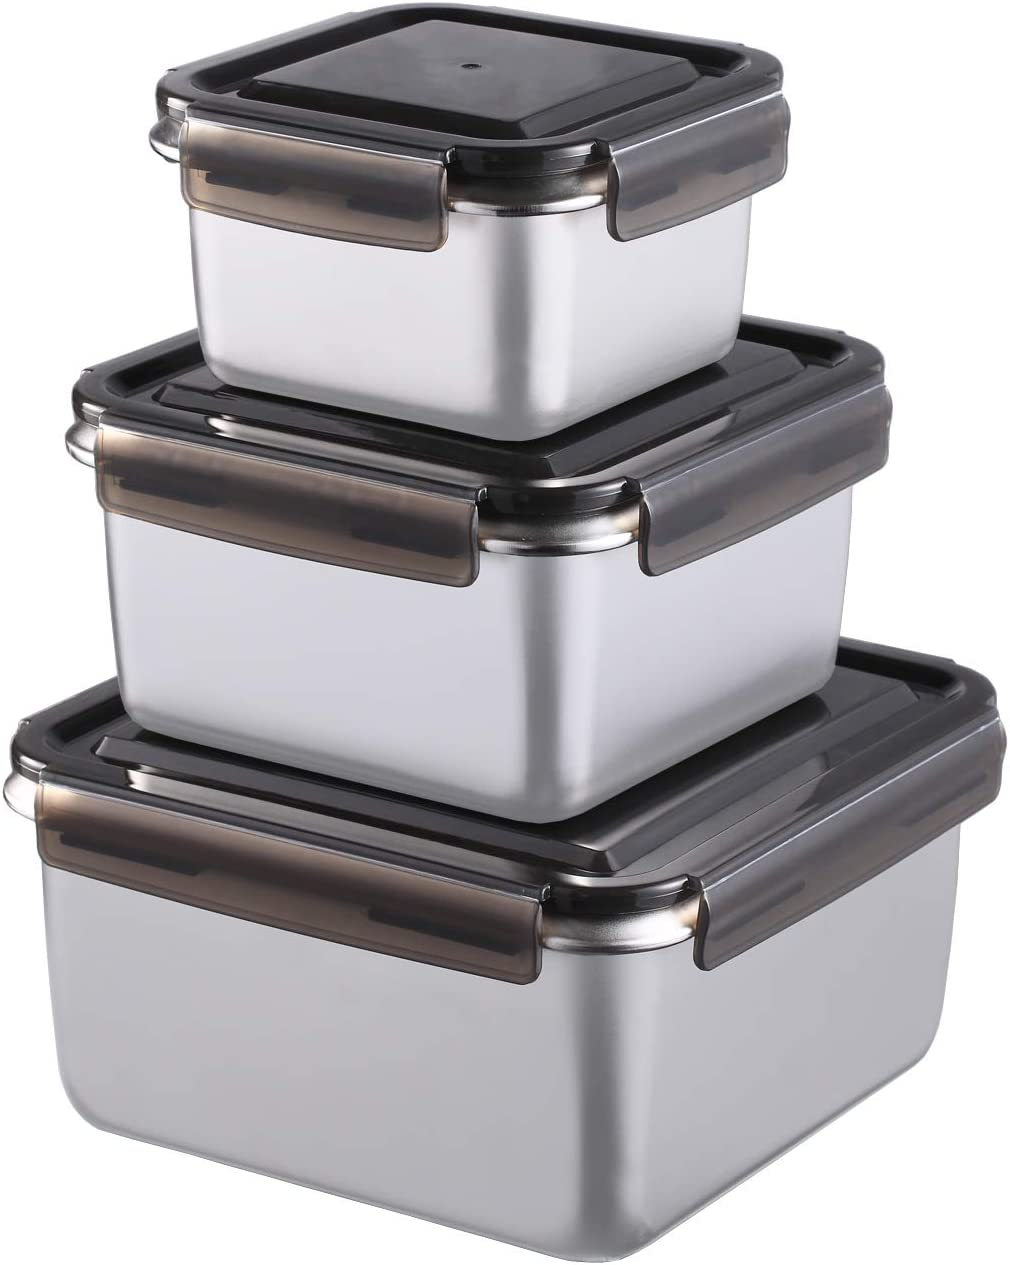 316 Medical Stainless Steel Food Containers - 5050ml Total Capacity Set of 3 Sizes Kimchi Storage Lunch Box with Sealed Lid - Freezer & Dishwasher Safe - for Fruit, Sandwich, Pickles, Picnic, Camping